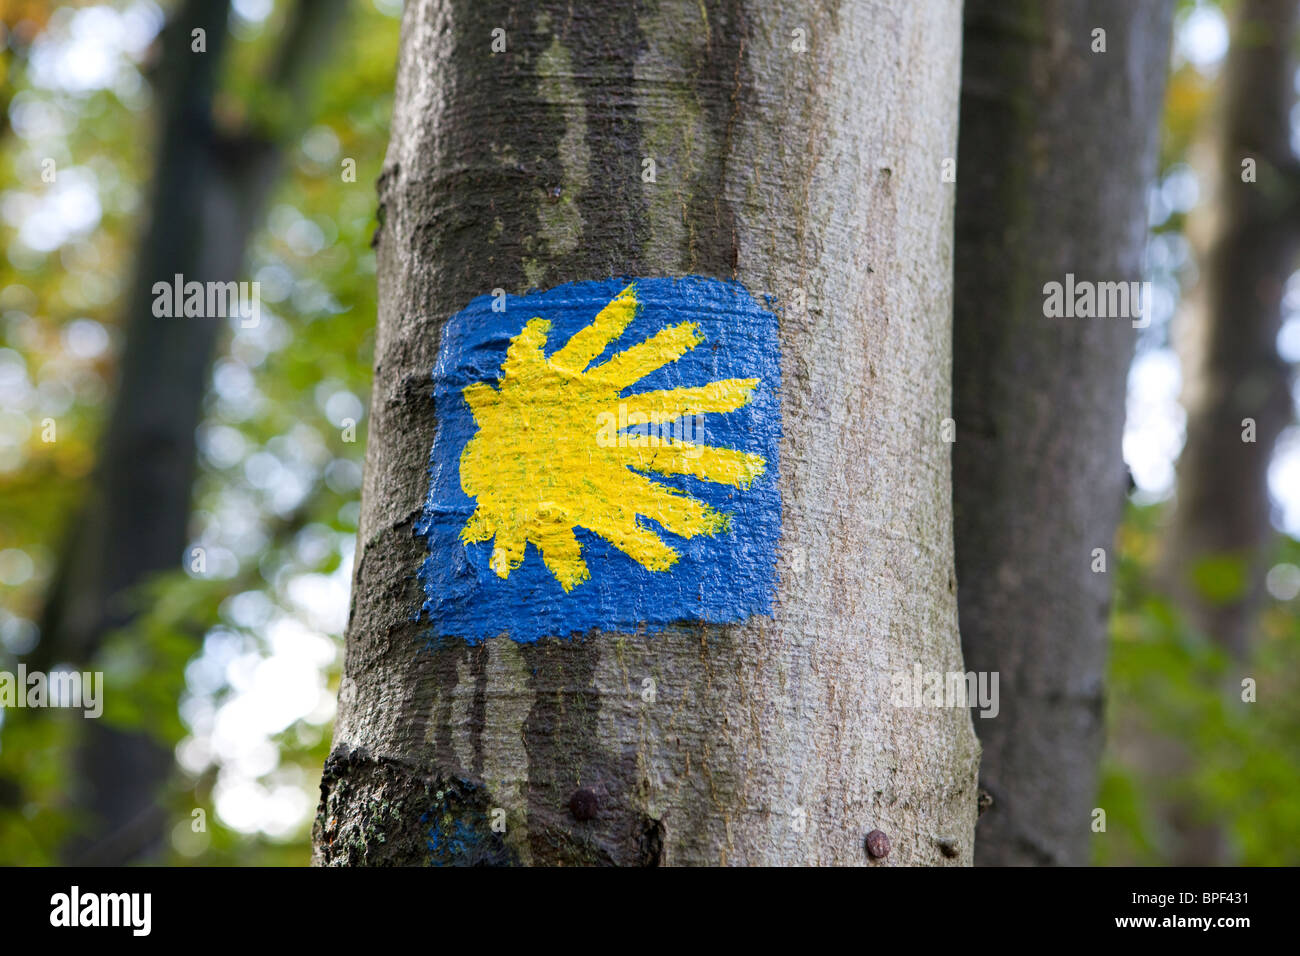 the sign of the Camino de Santiago trail on a tree - Stock Image